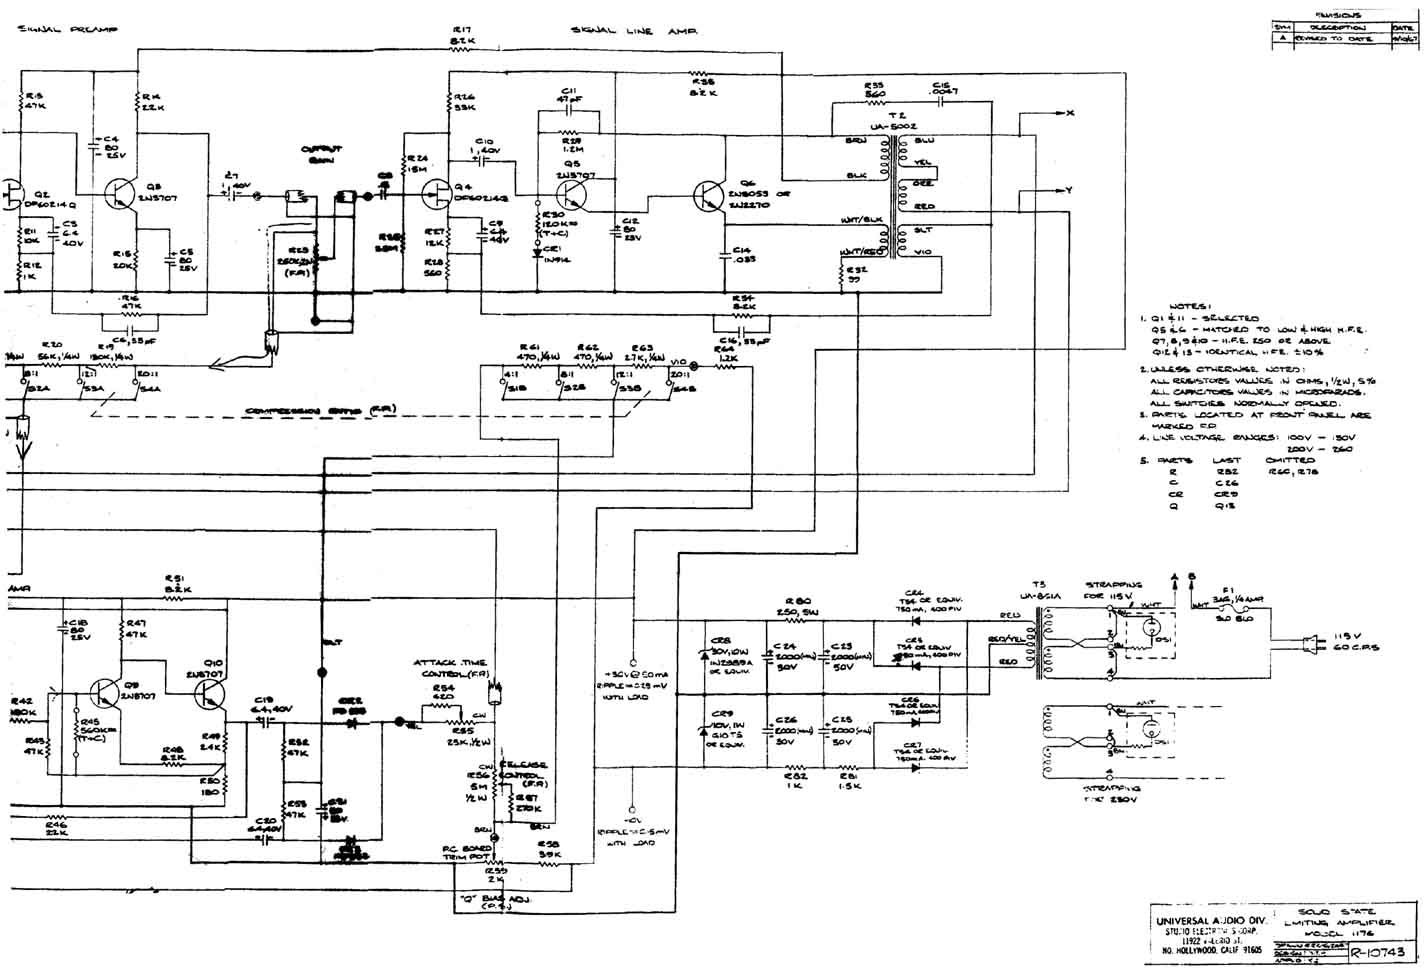 Audio Bridge Schematics